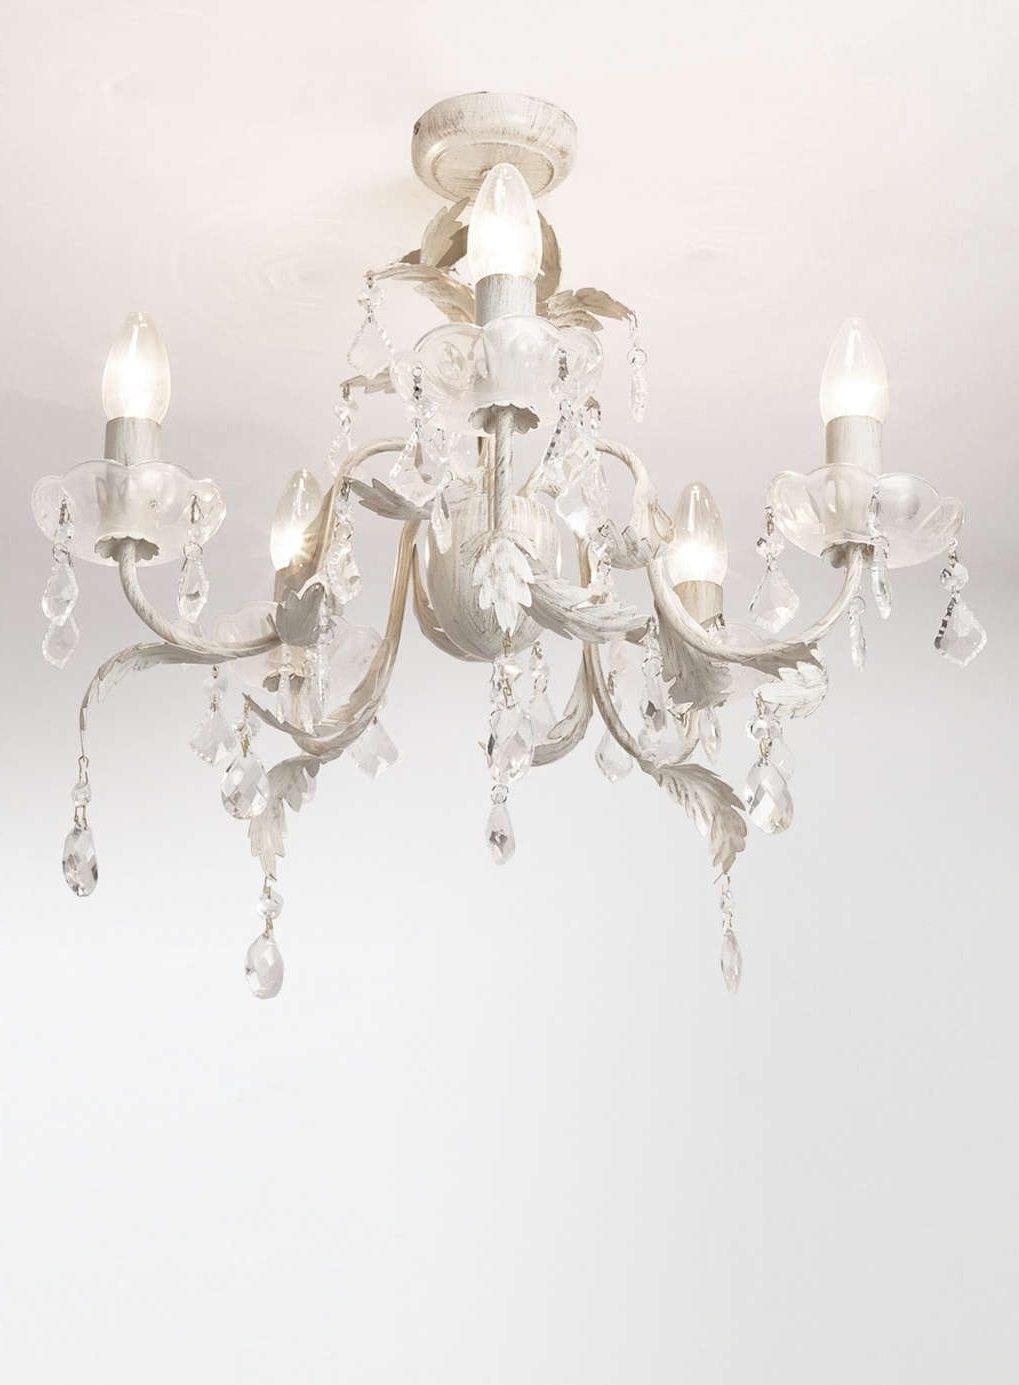 Flush Fitting Chandeliers Throughout Most Current Juliette 5 Light Flush Fitting Chandelier – Flush Fitting – Ceiling (View 5 of 20)